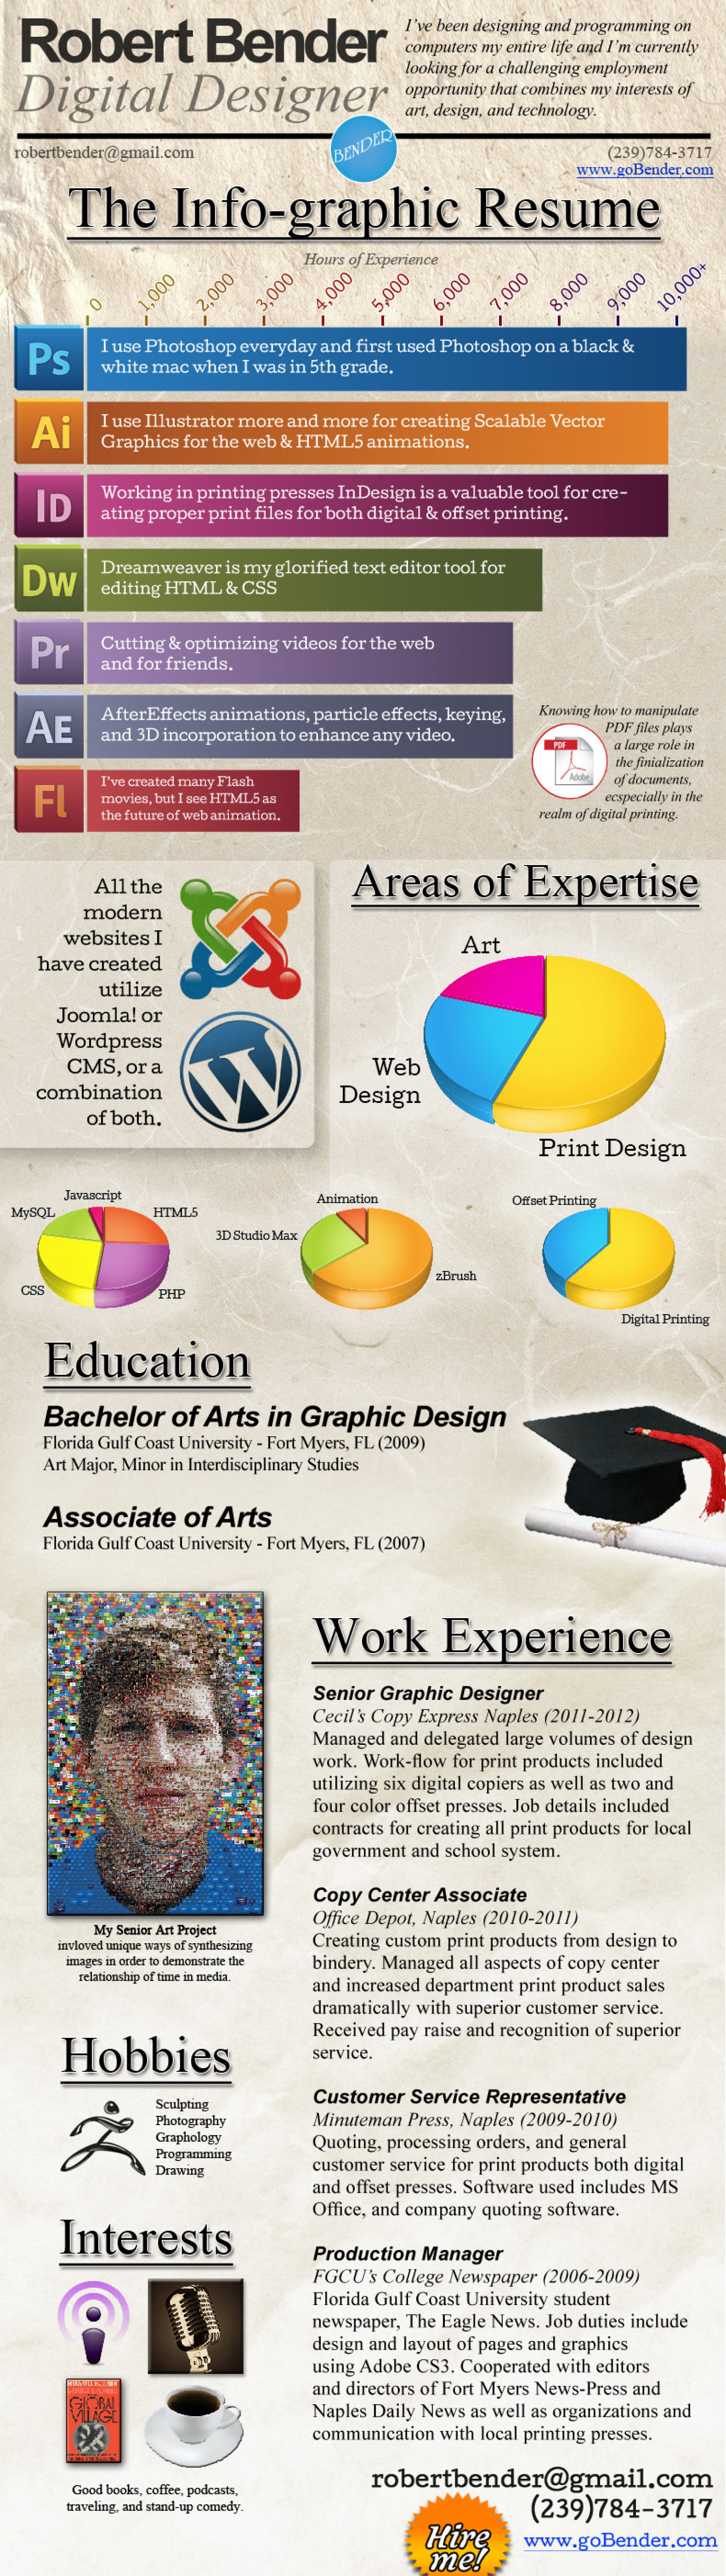 Robert Bender Info-graphic Resume Infographic